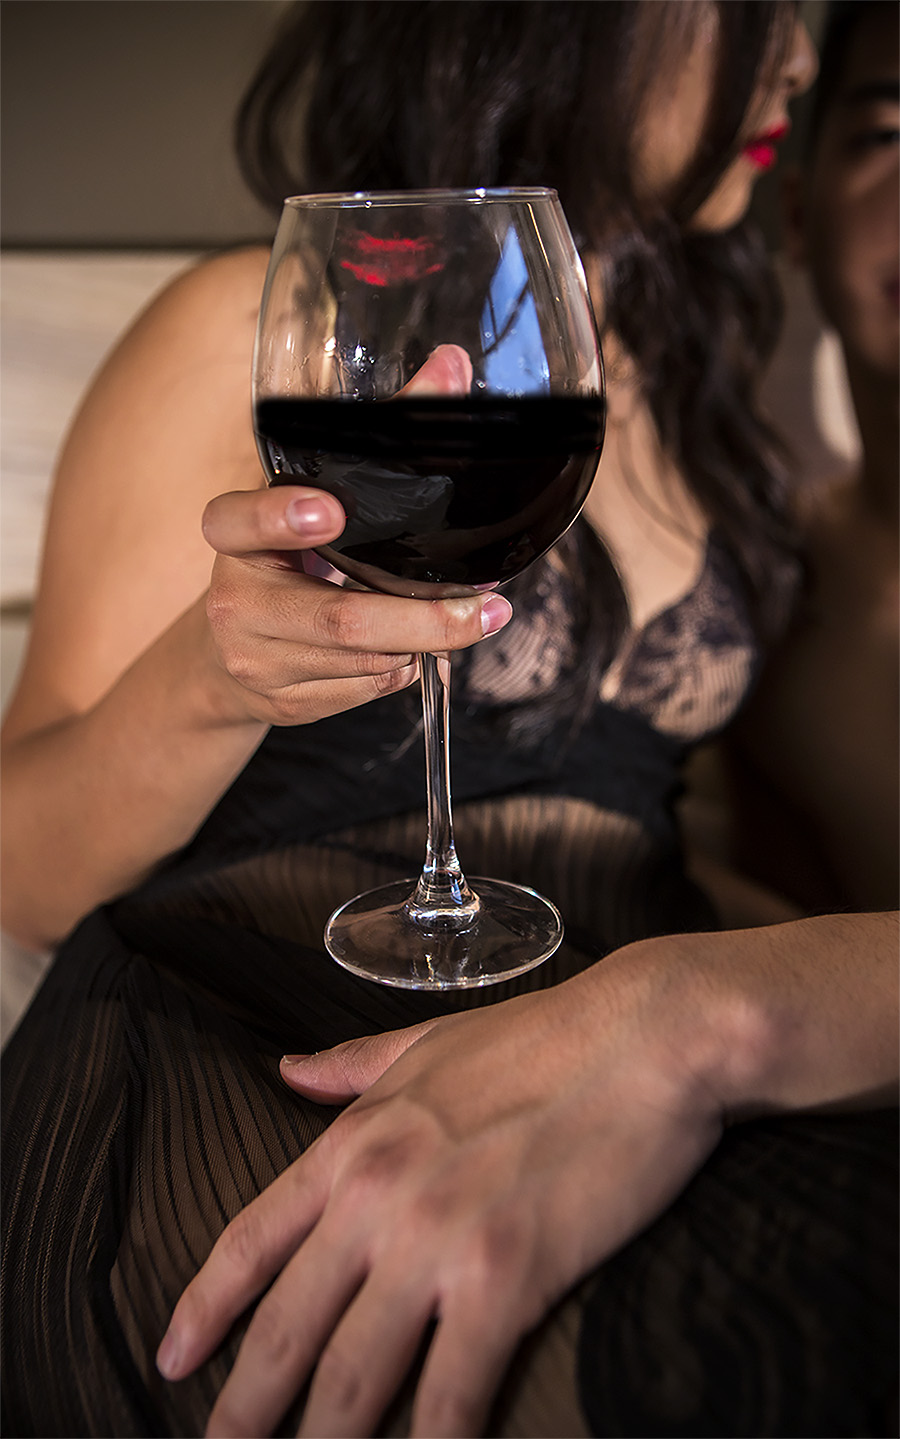 Amber_Shi_erotic_photography_Wine_foreplay_lipstain_lace